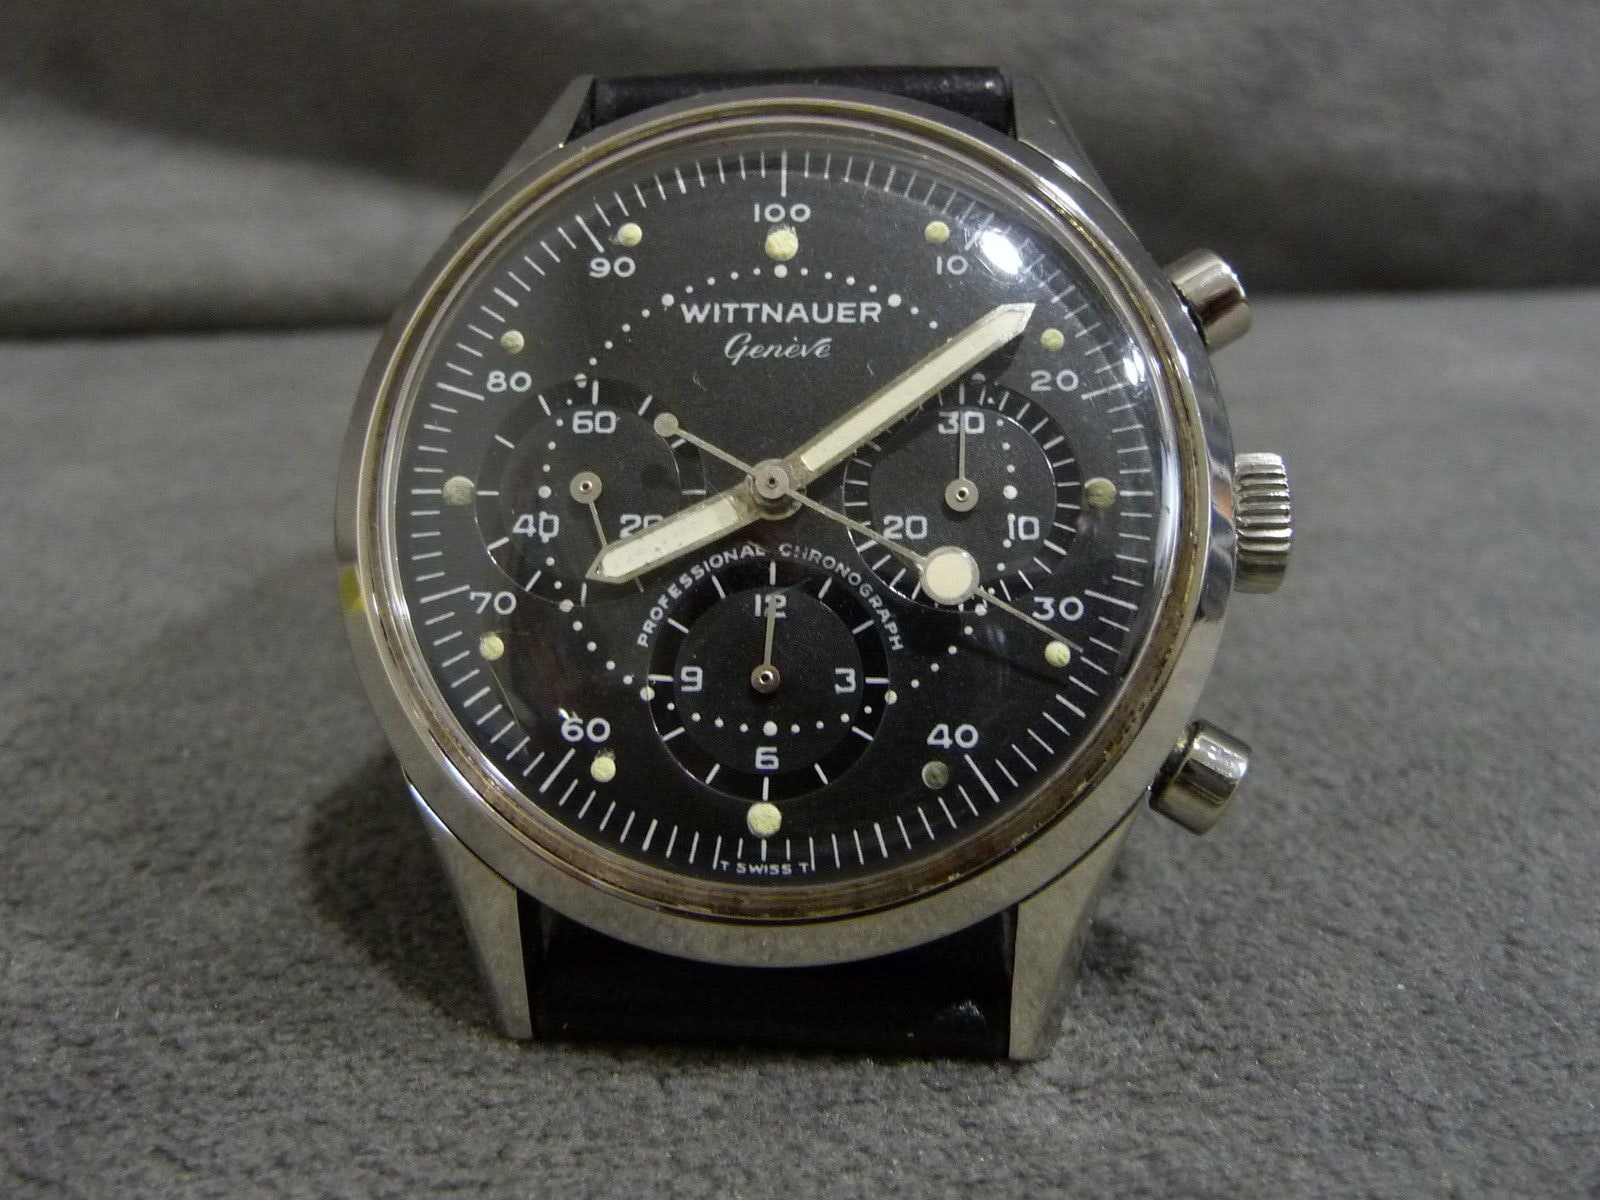 Wittnauer Professional Chronograph Reference 242T Bring a Loupe: A Rolex With Tiffany Dial, A B-Series Royal Oak With Original Papers, An Early Zenith El Primero, And Many Others Bring a Loupe: A Rolex With Tiffany Dial, A B-Series Royal Oak With Original Papers, An Early Zenith El Primero, And Many Others Wittnauer Pro chrono